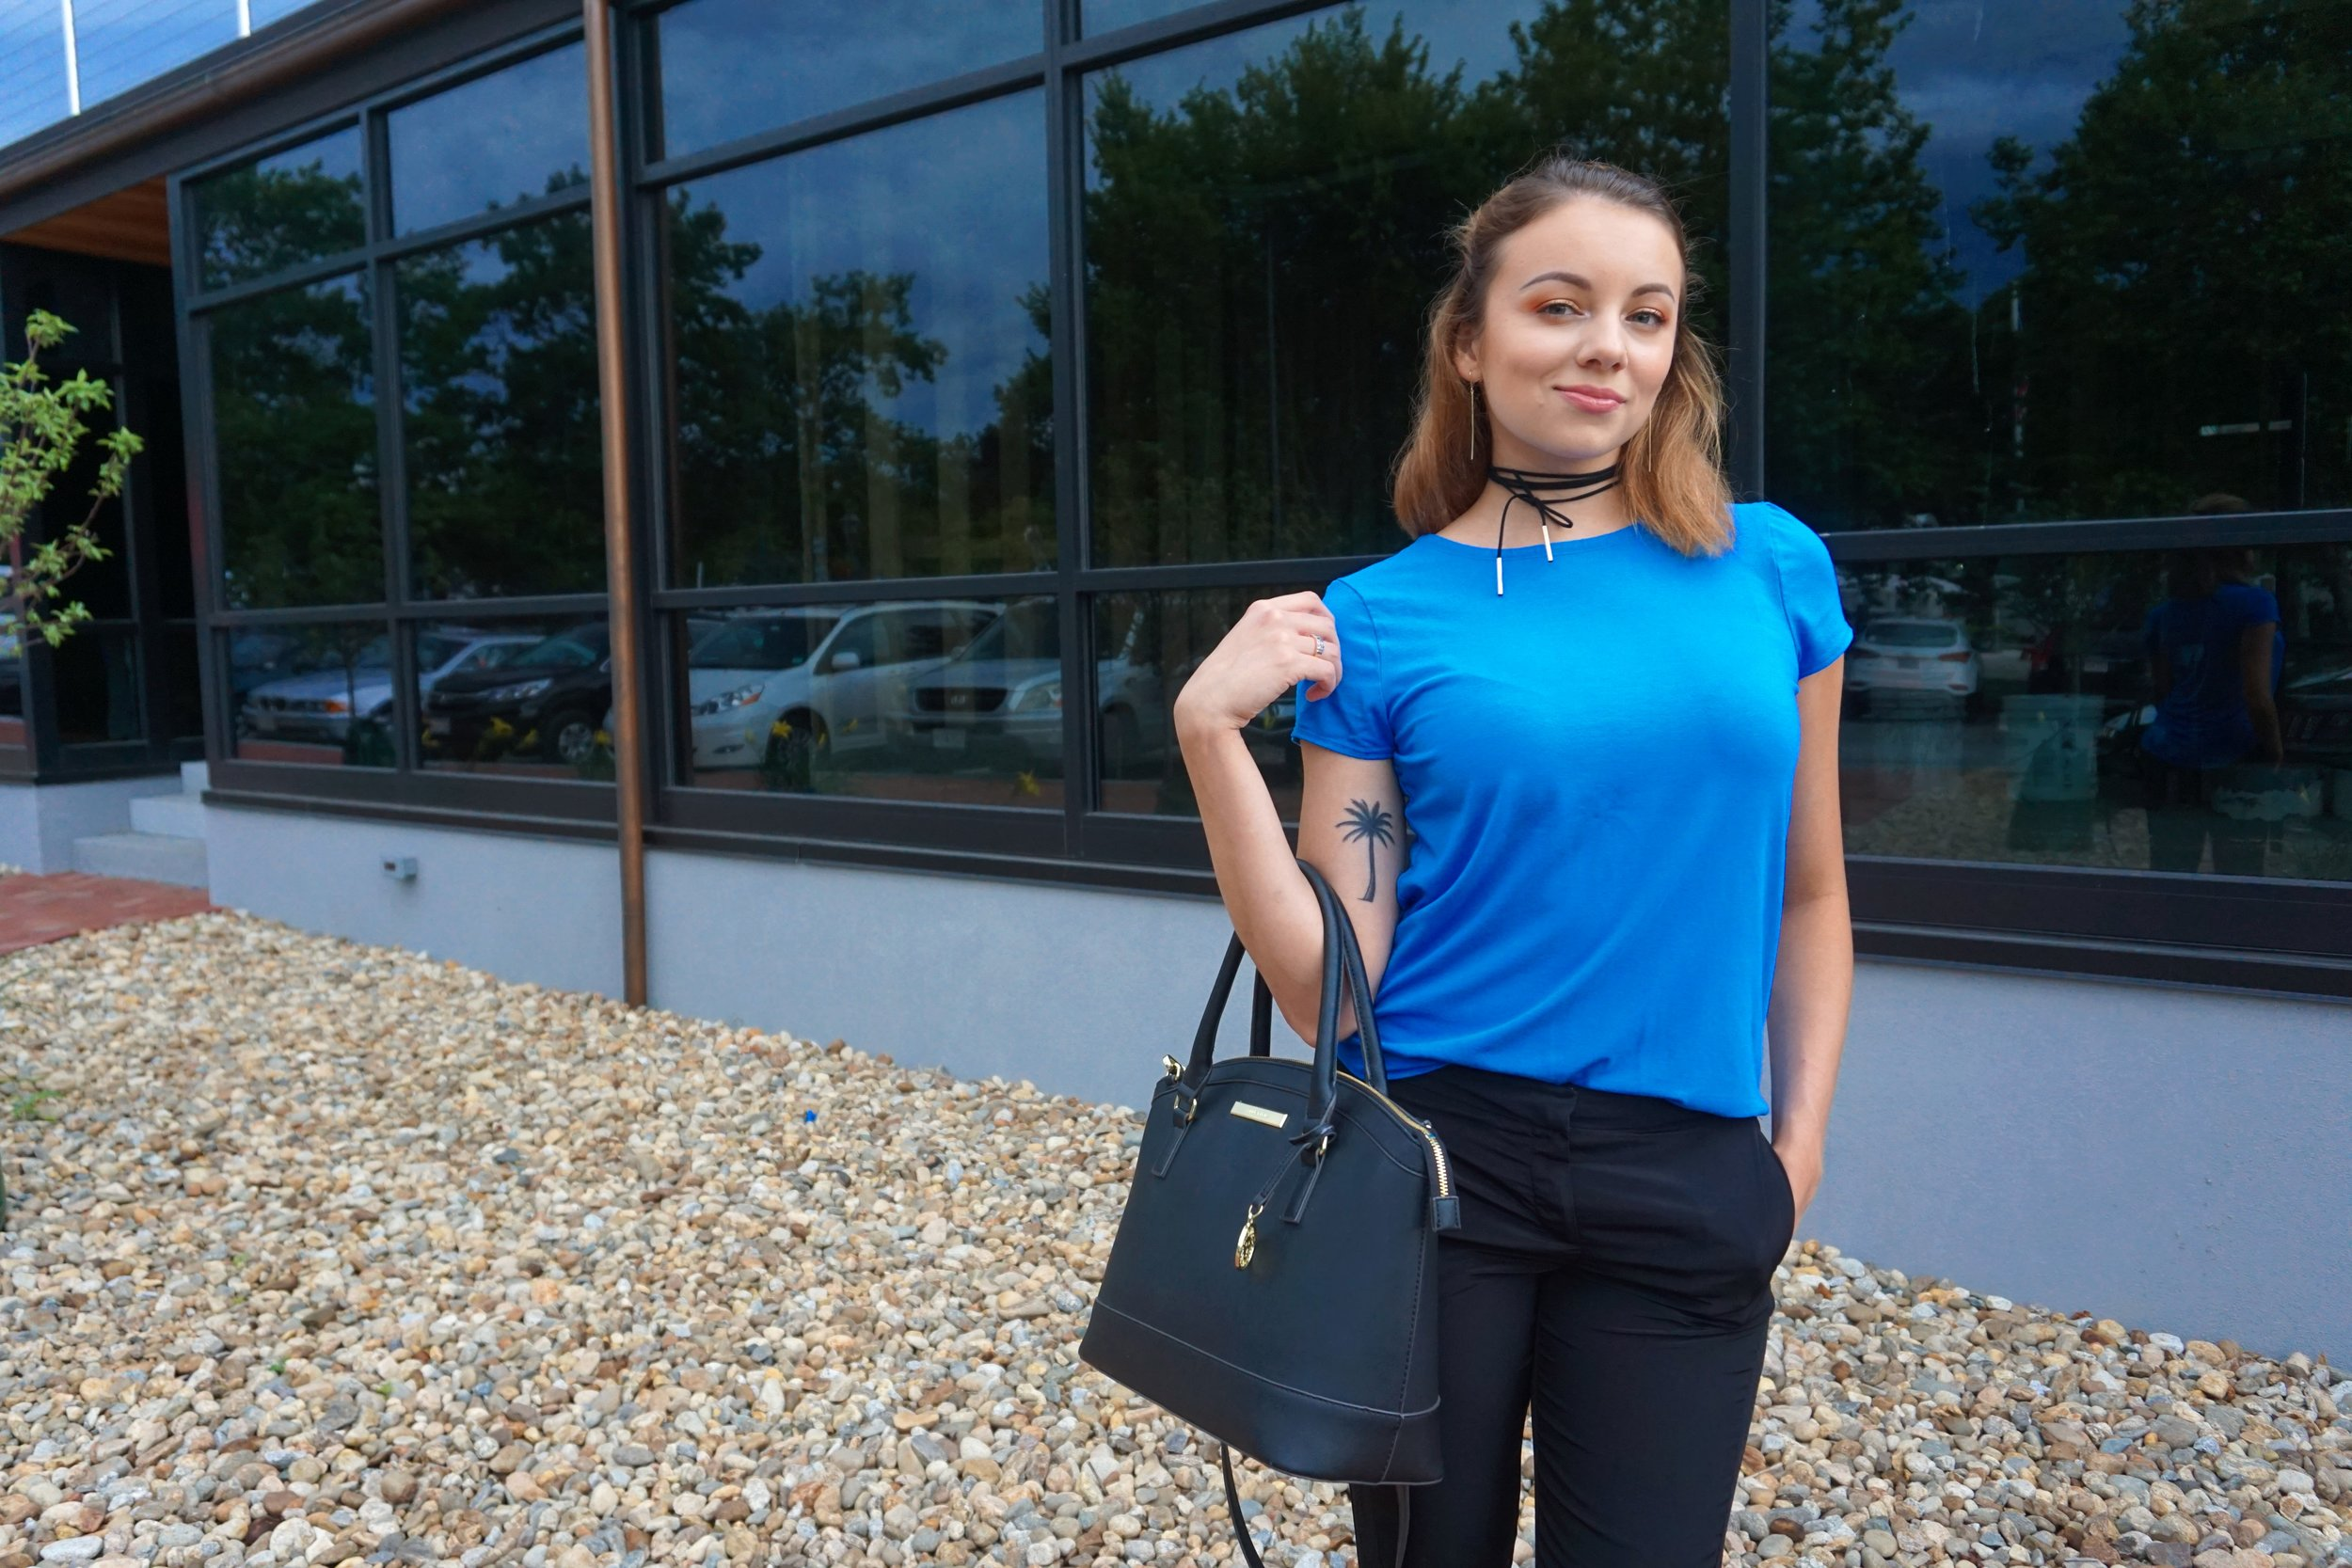 A girl posing by the office. She is holding a big black bag, and wearing a baby blue top and black pants.